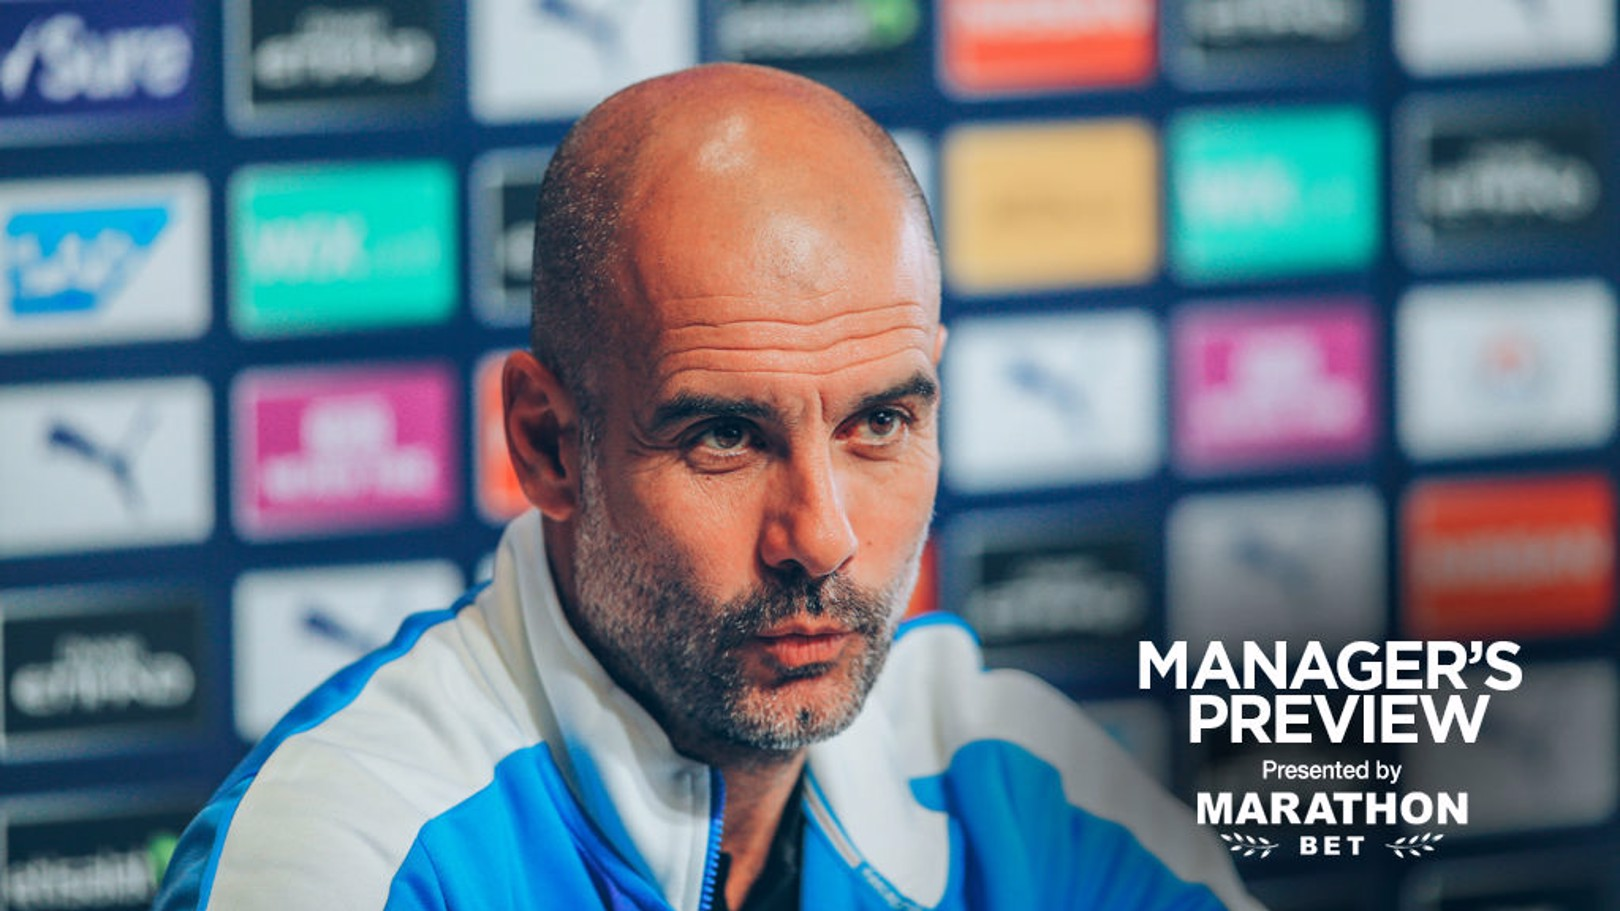 PEP TALK: The boss has given us a full injury update ahead of our trip to Norwich